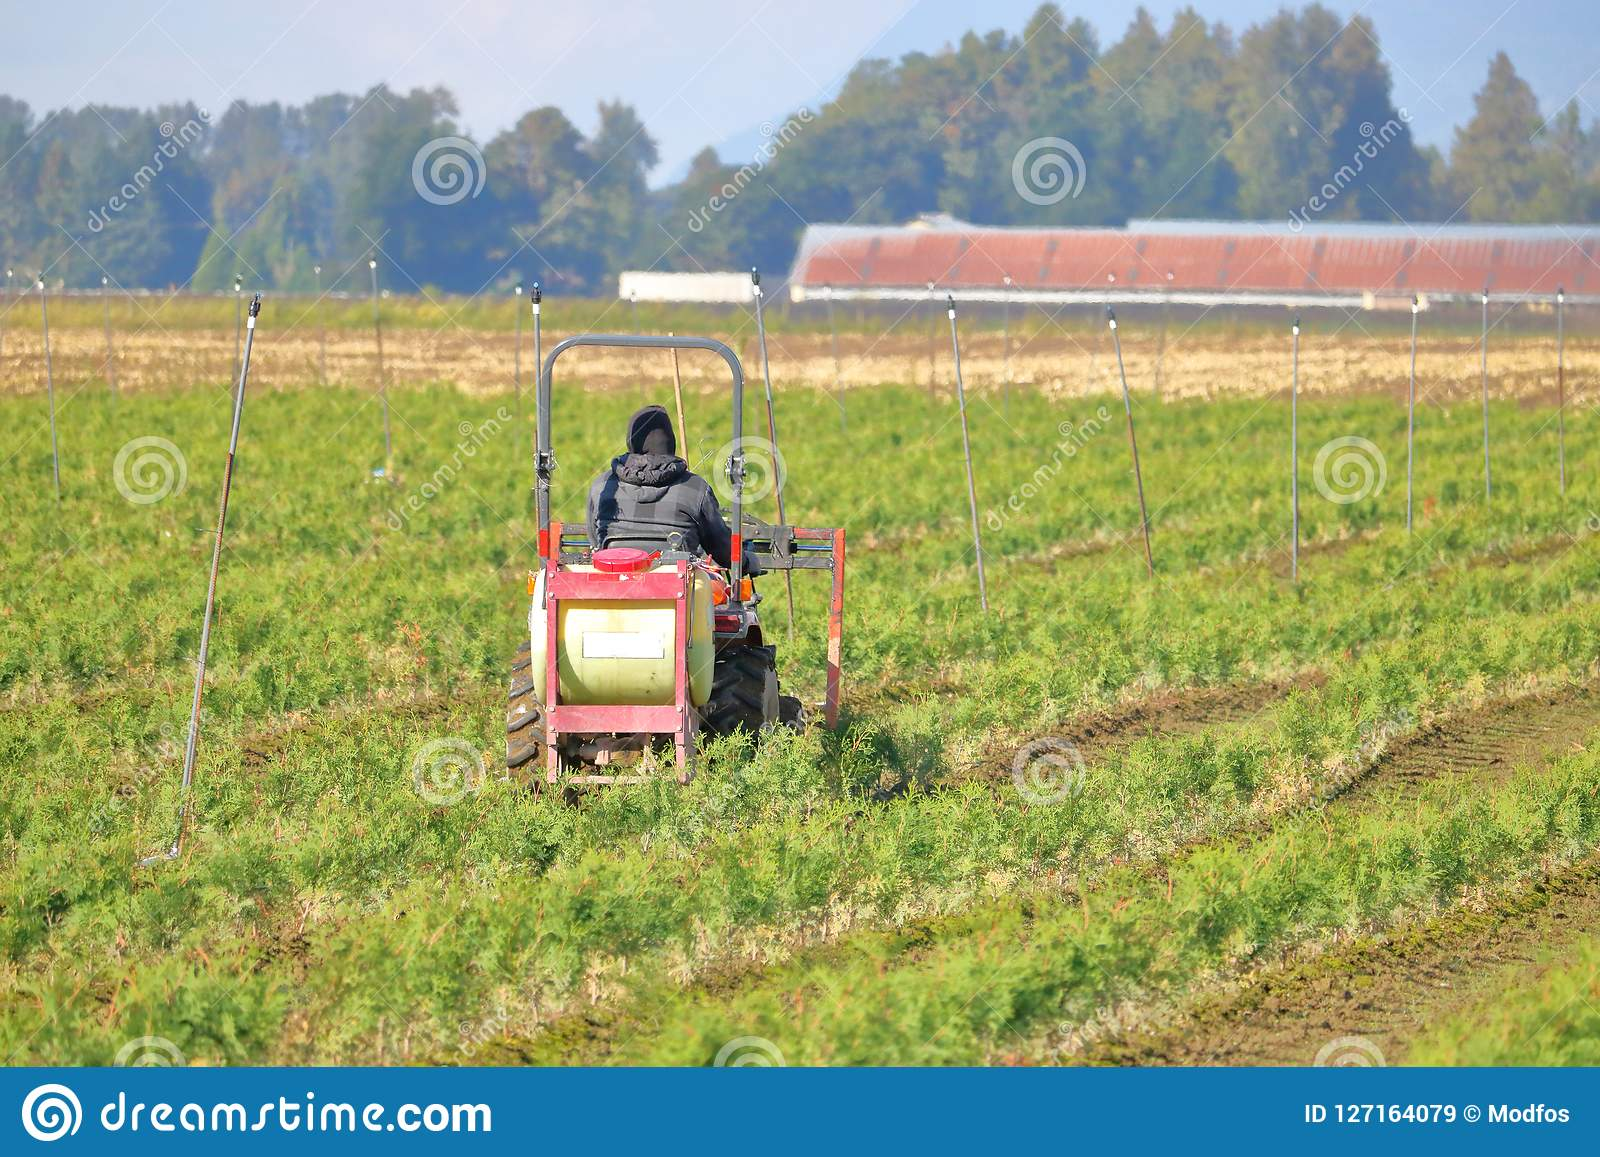 Farm Worker Spraying Chemicals Editorial Stock Image - Image of